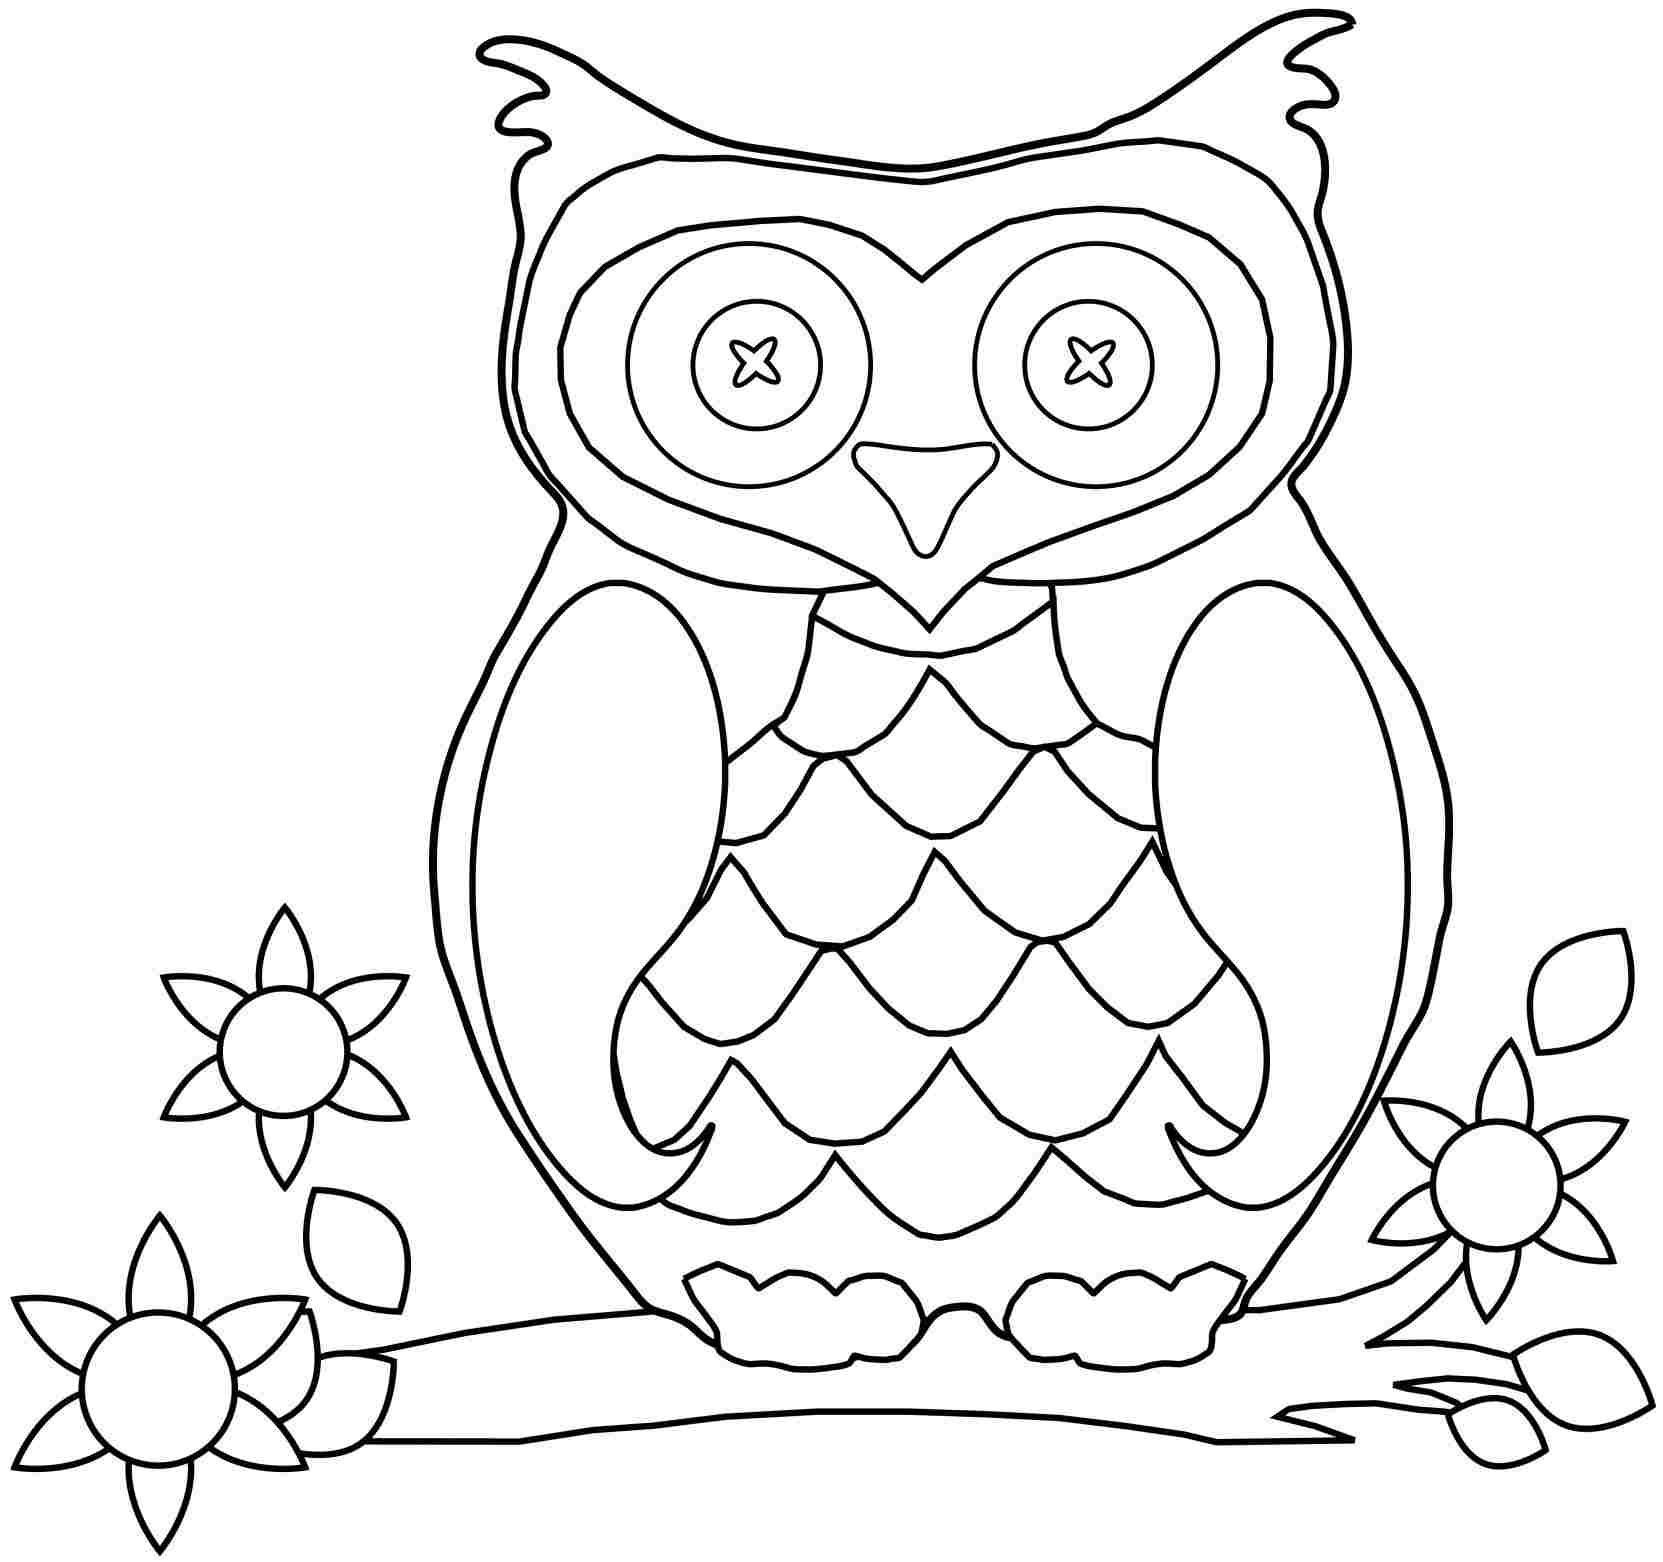 Fall Coloring Page Fall Coloring Pages Jokingart Com And For Preschoolers Bitslice